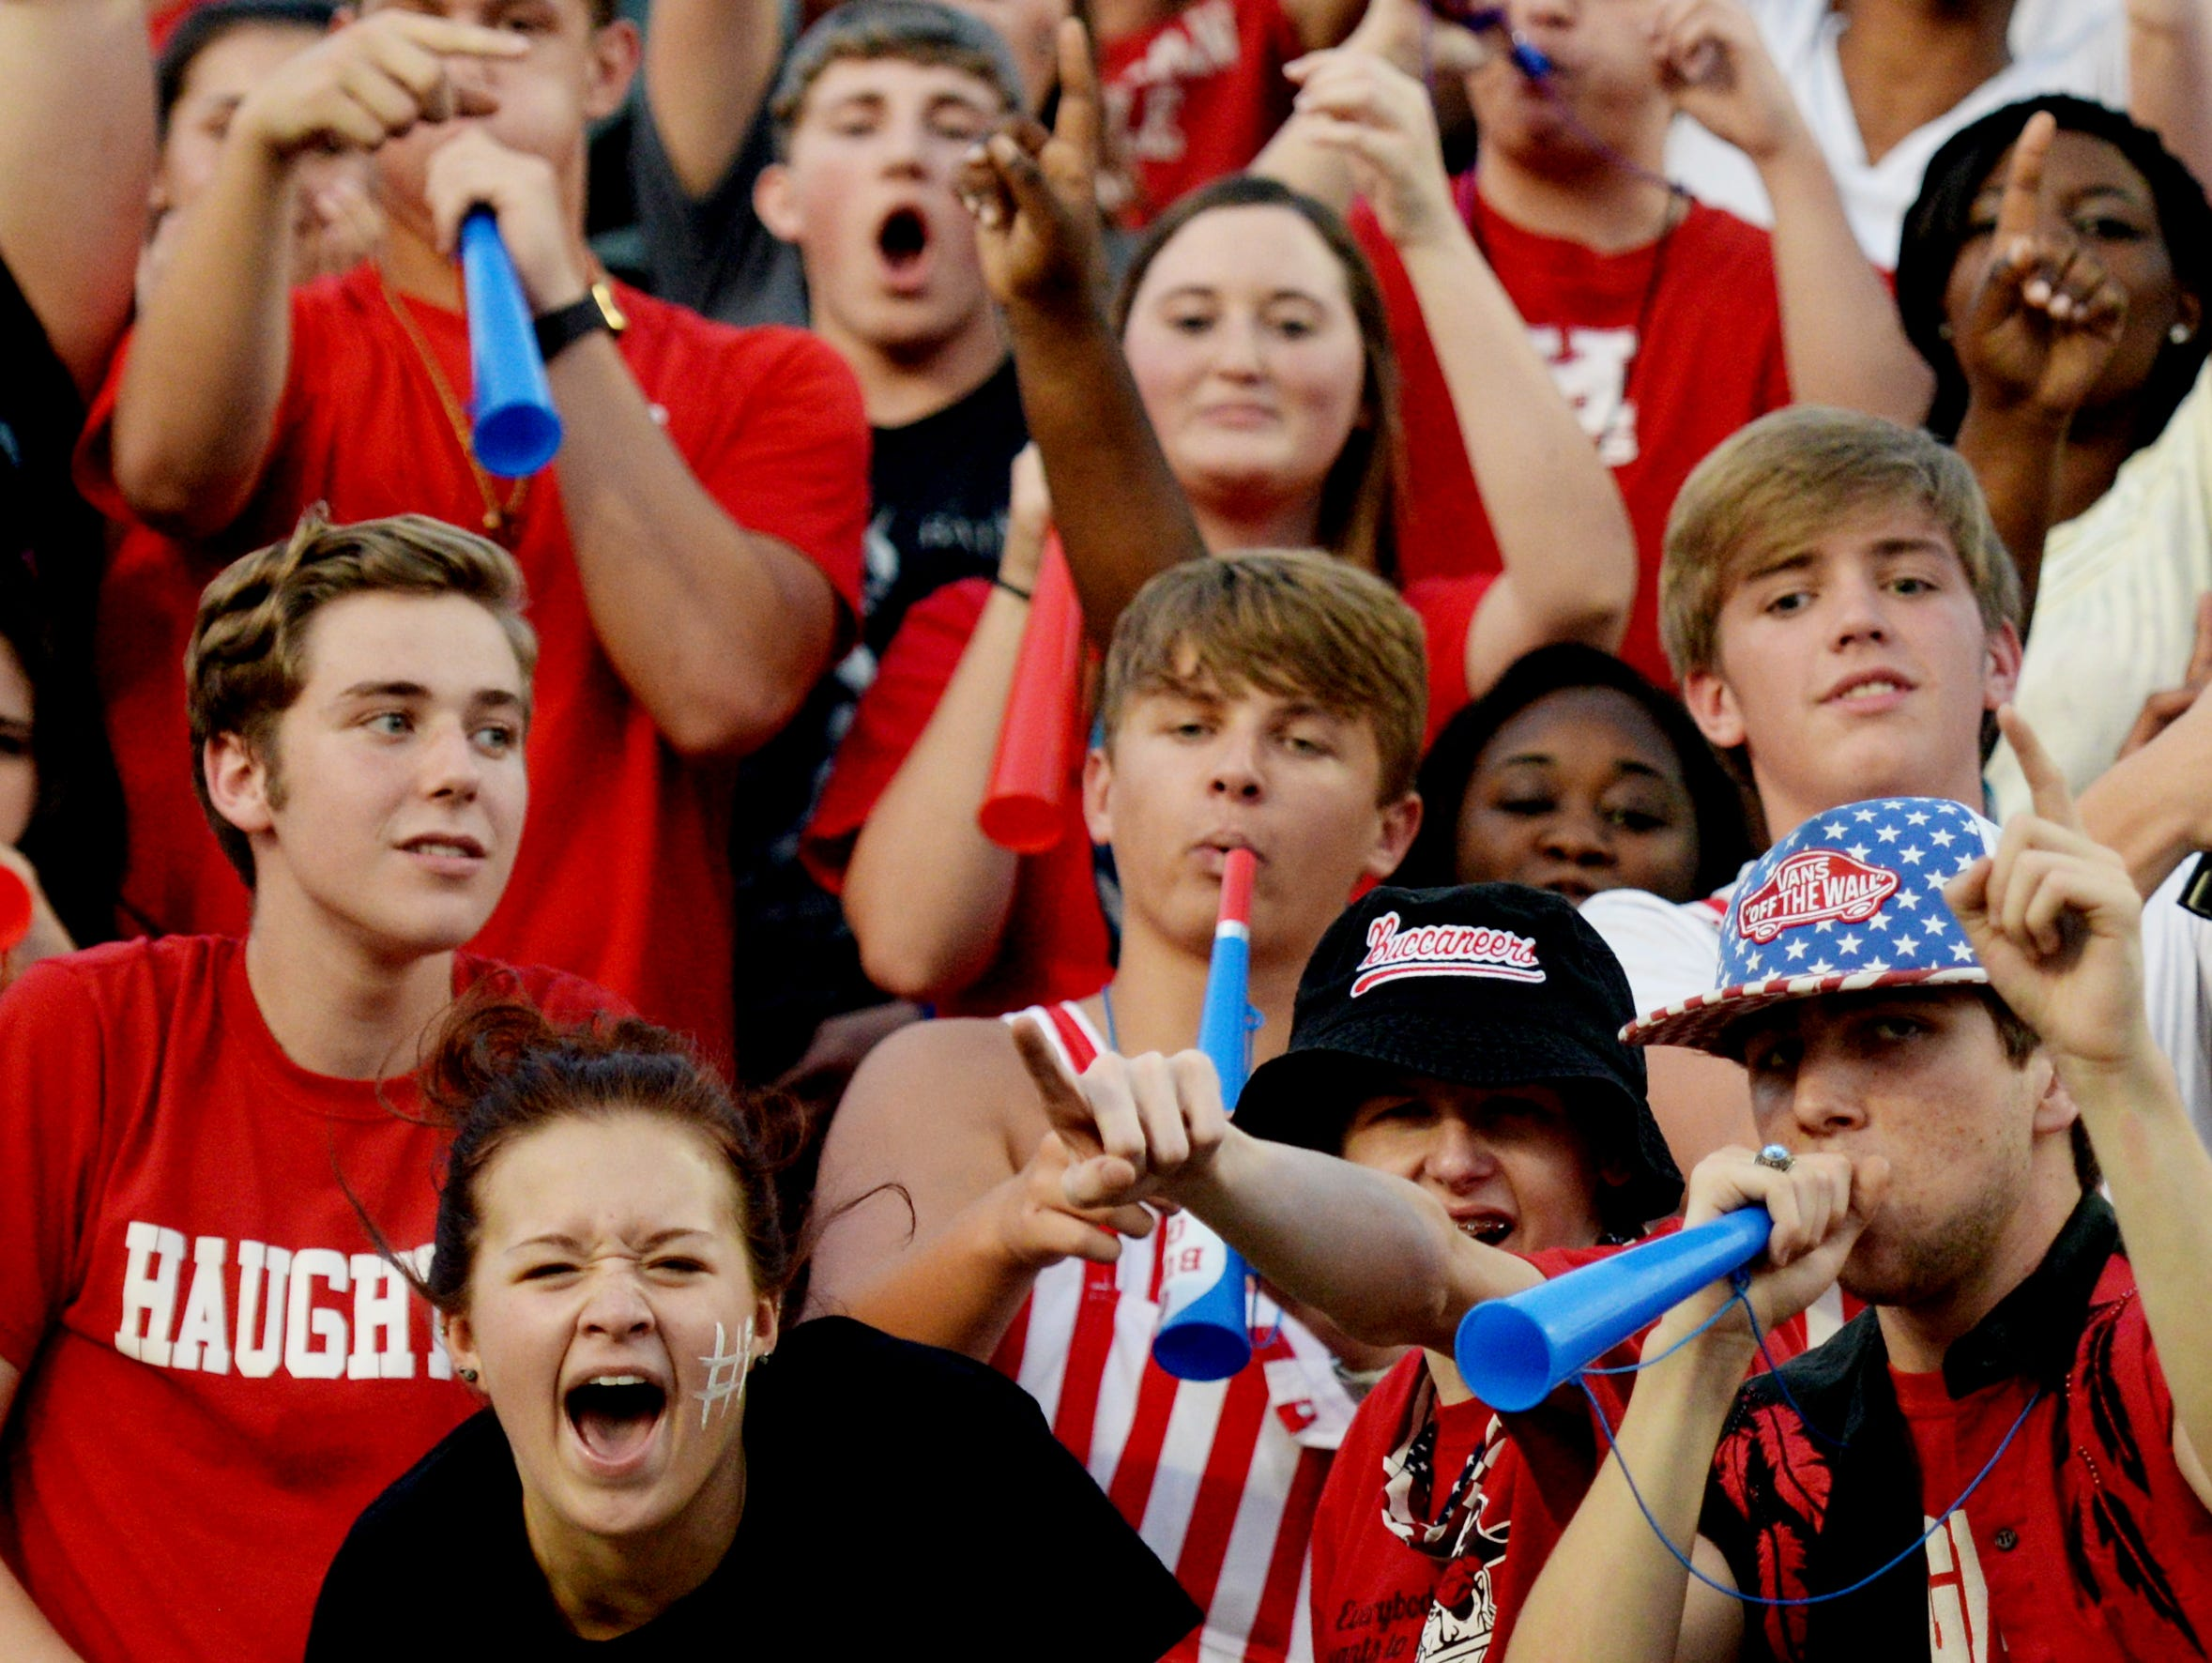 Haughton will face Southwood this week.